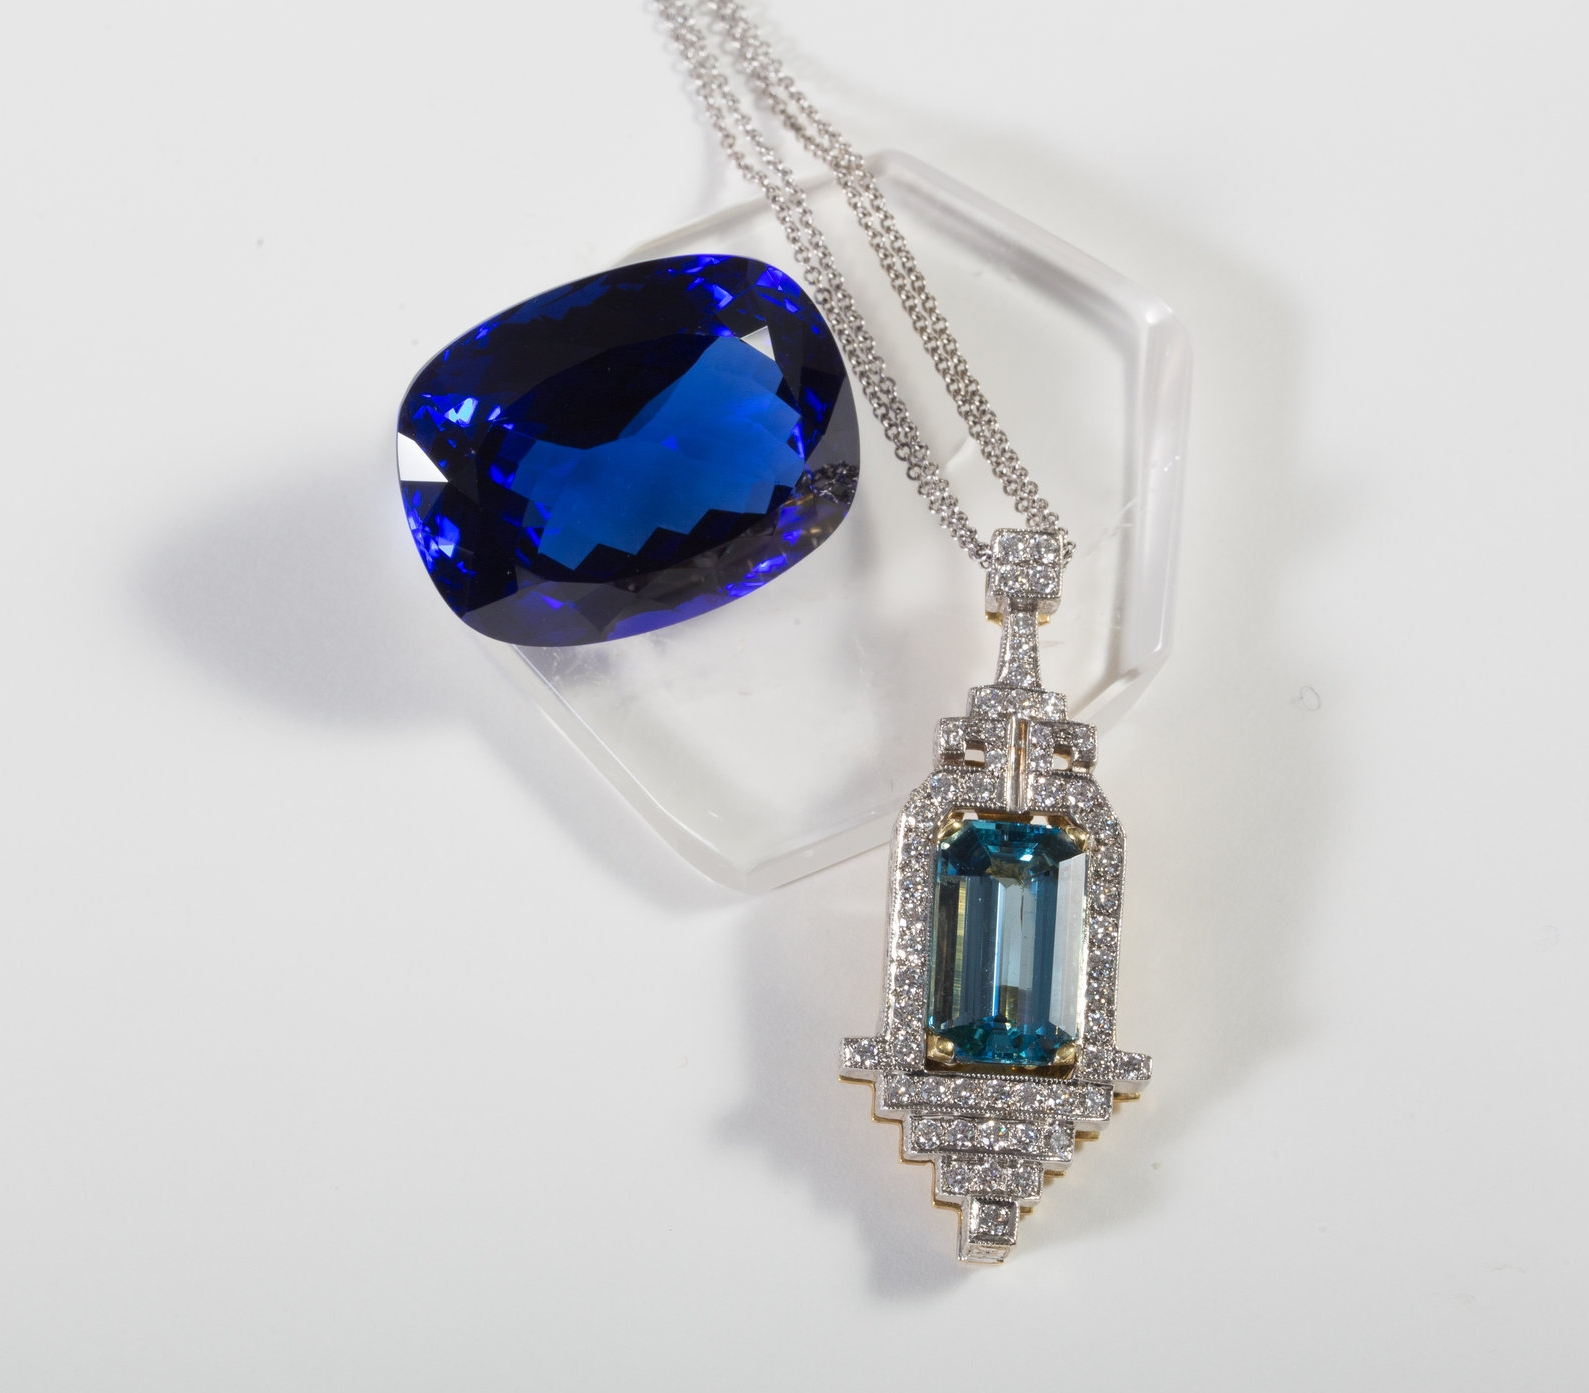 5.96ct Aquamarine Pendant set in 18k Hand Engraved White Gold with 18k Yellow Gold Accents $16,500